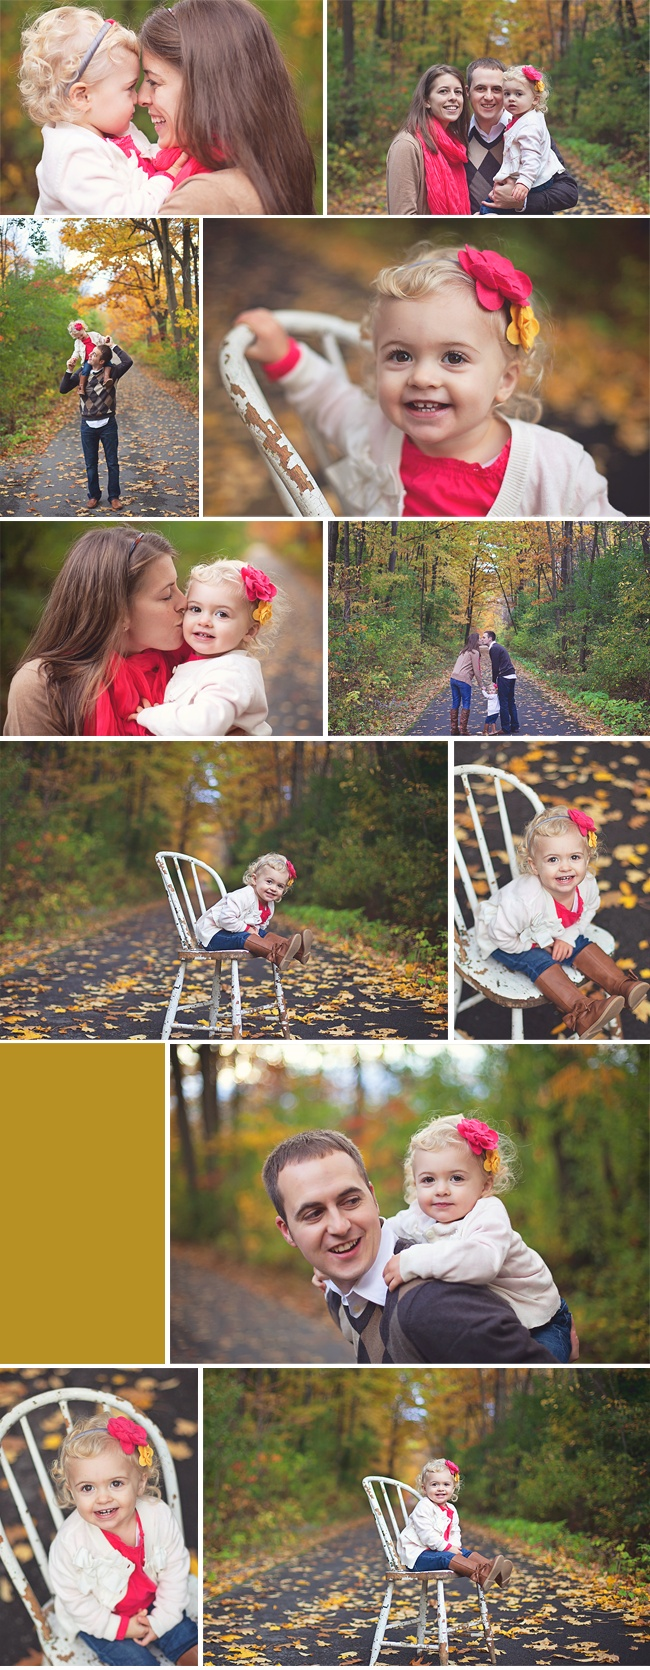 Outdoor fall family session - pretty pops of pink. Evans Mills, NY Family Photographer